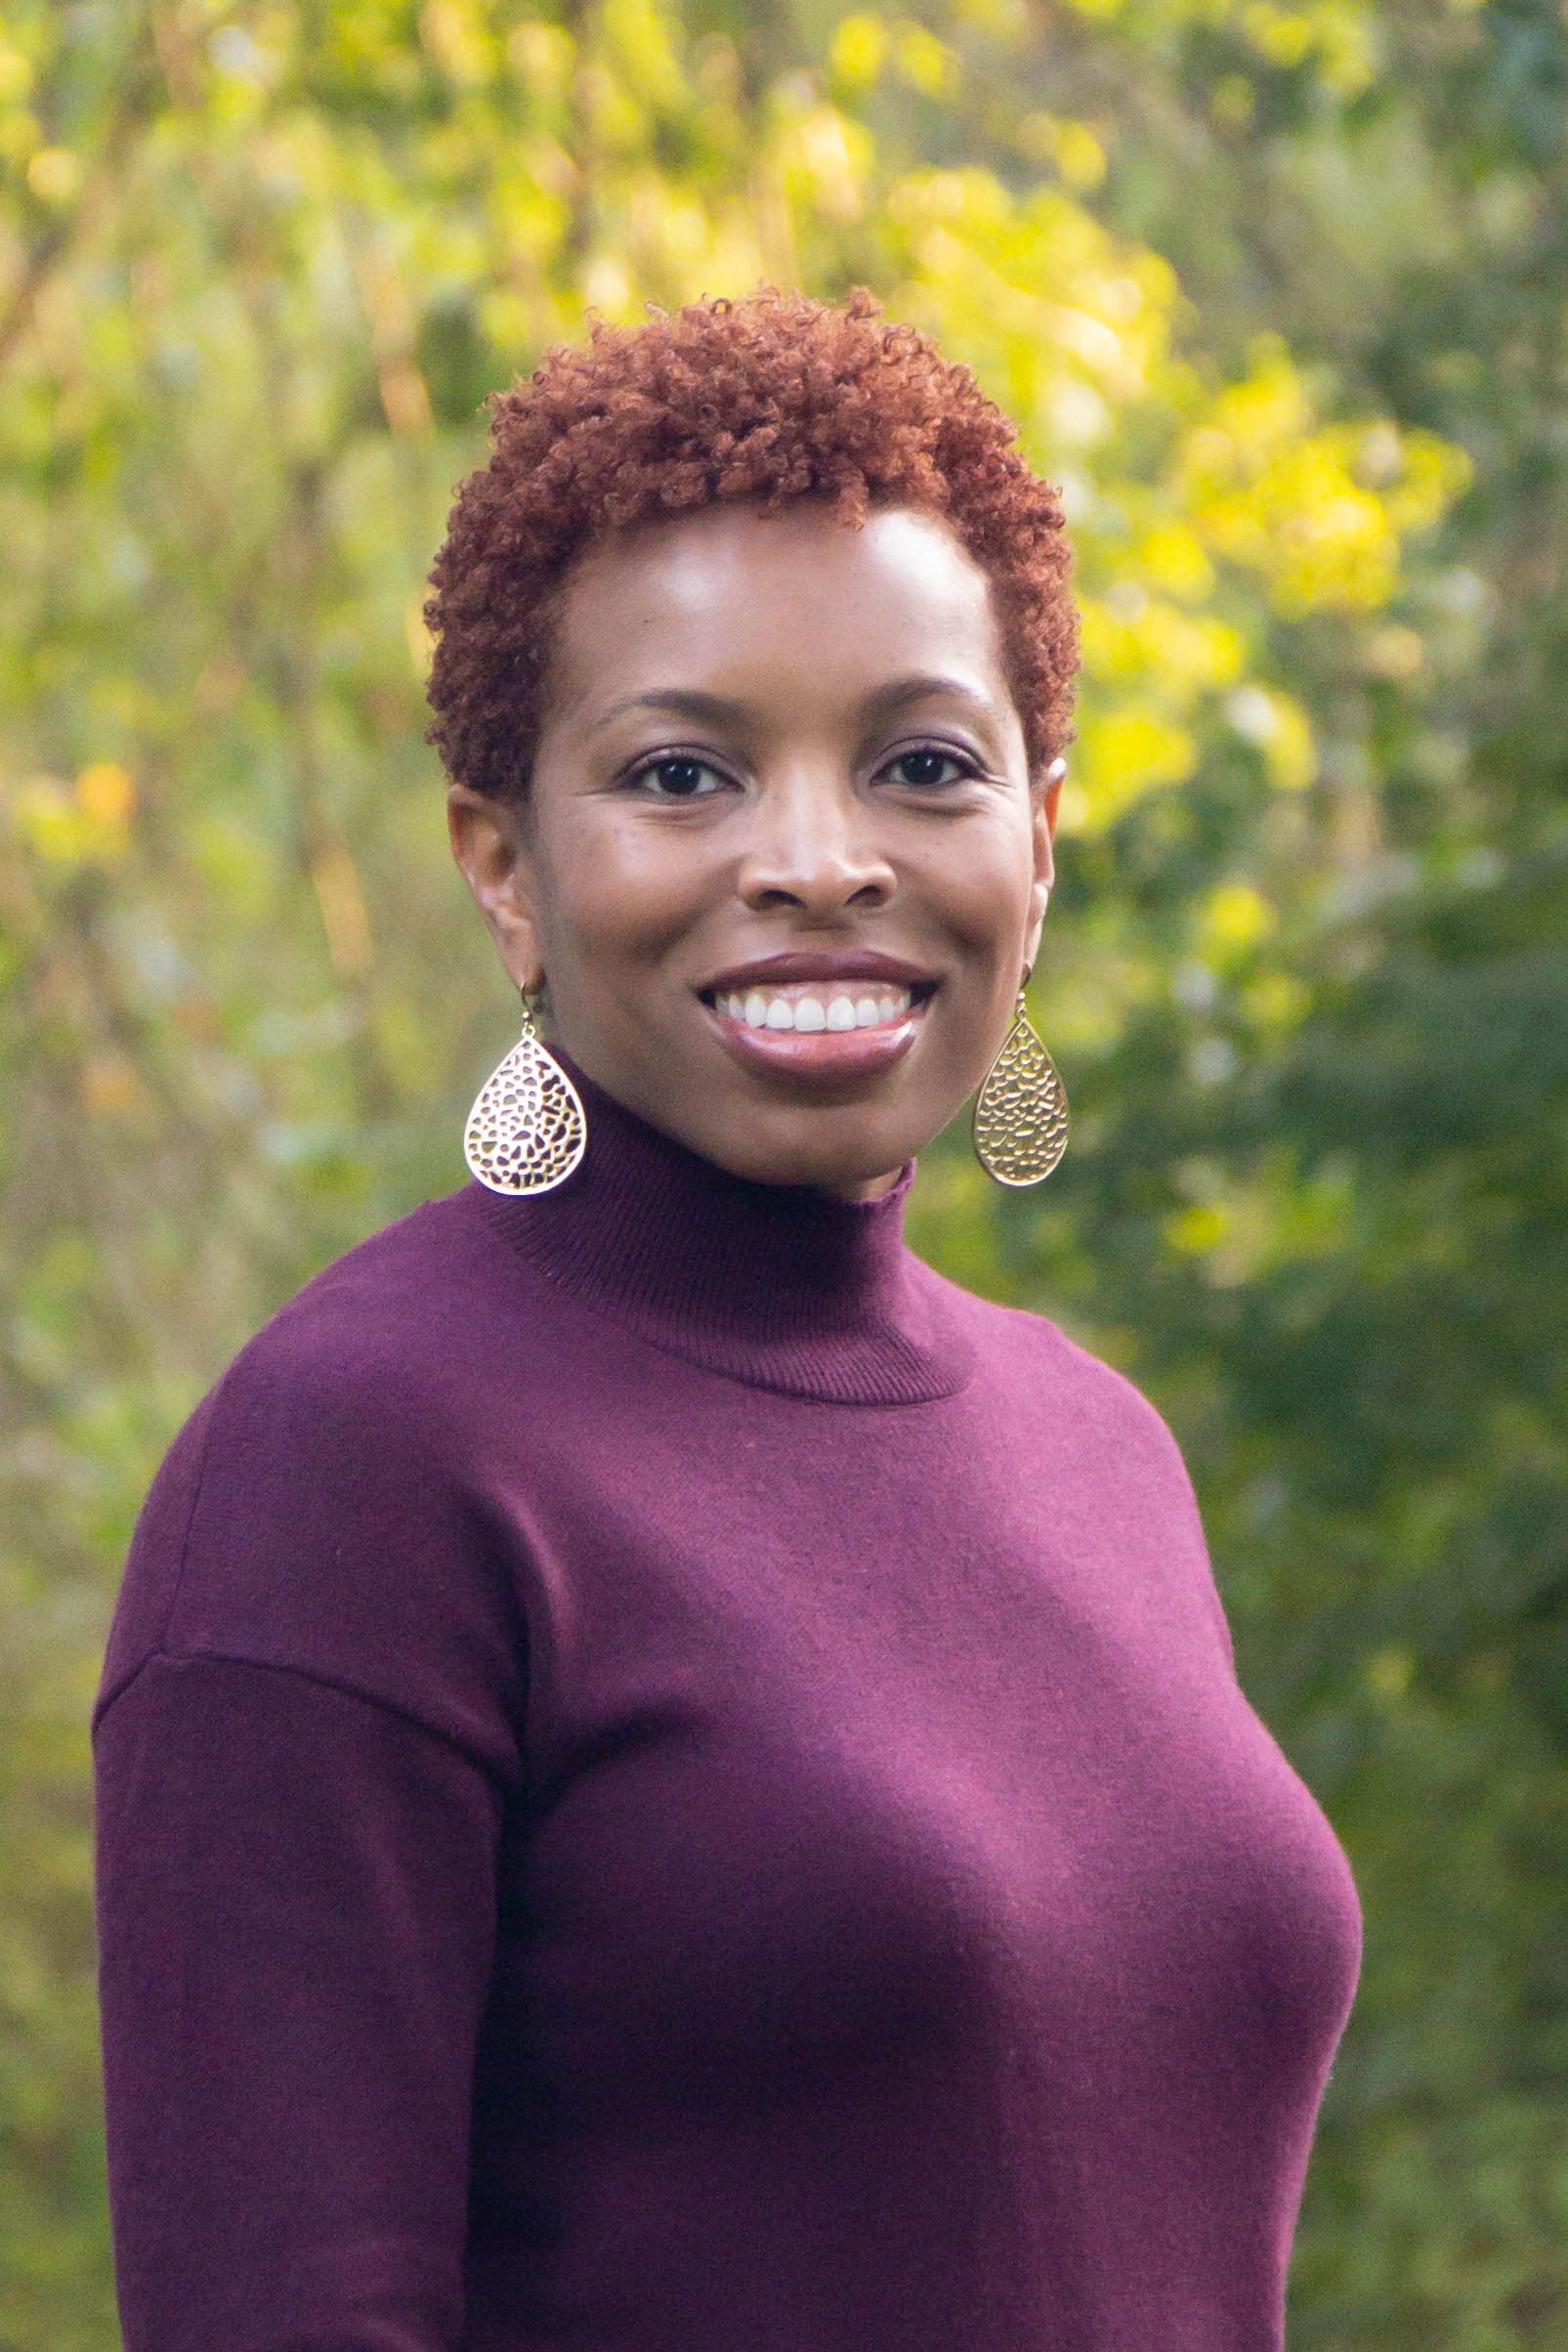 Kizzy Albritton, Ph.D., assistant professor in the School of Lifespan Development and Educational Sciences at Kent State